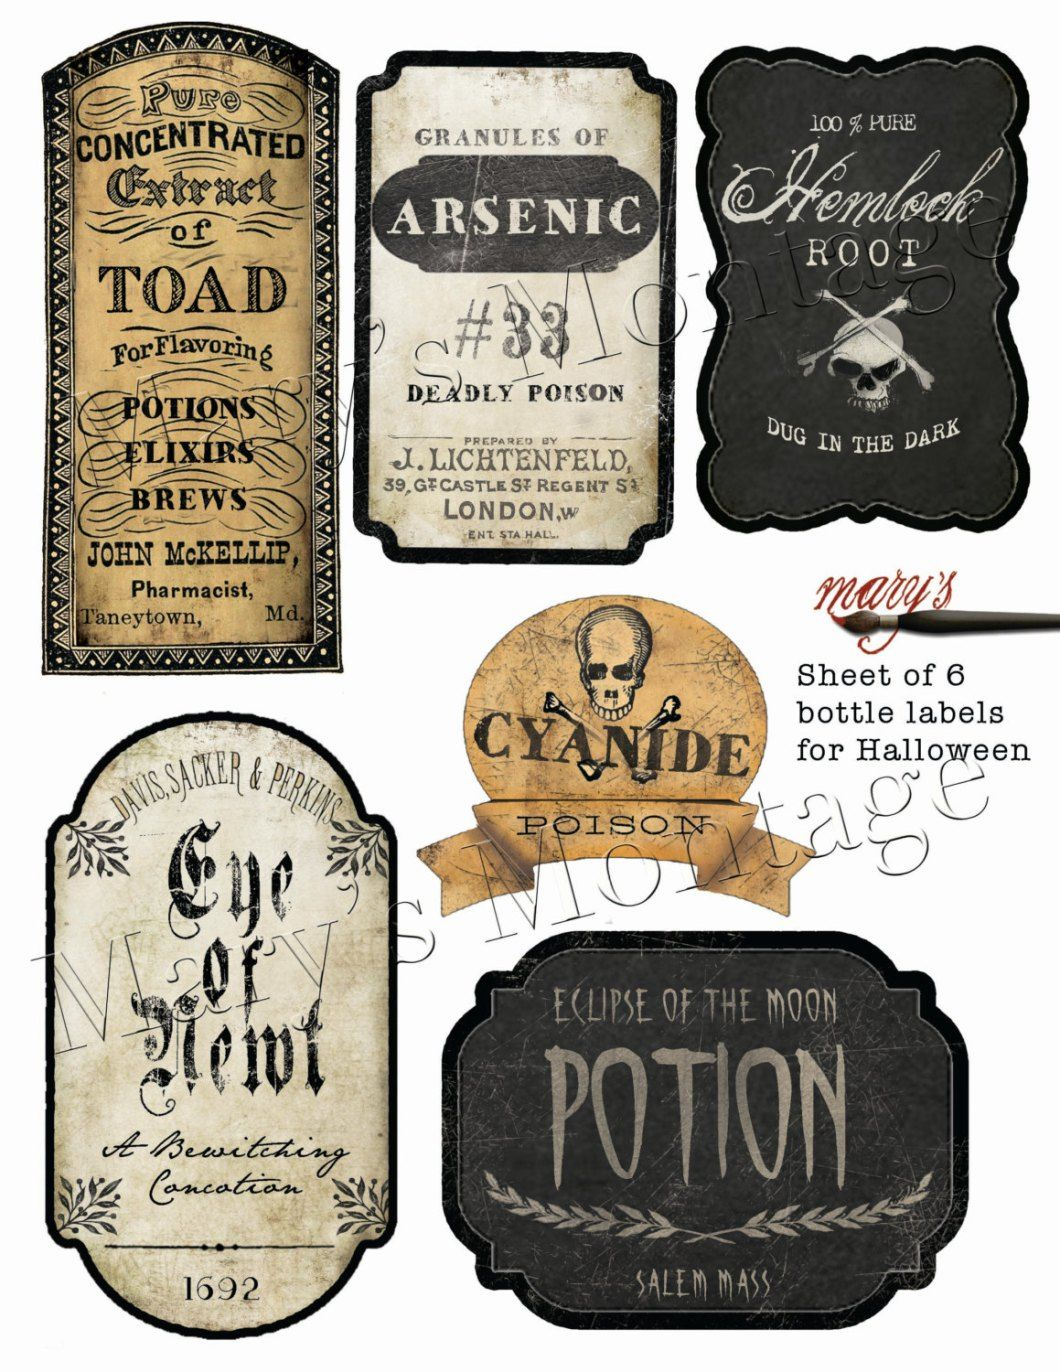 Free Halloween Bottle Labels Hallowen Org | Halloween | Pinterest - Free Printable Halloween Bottle Labels